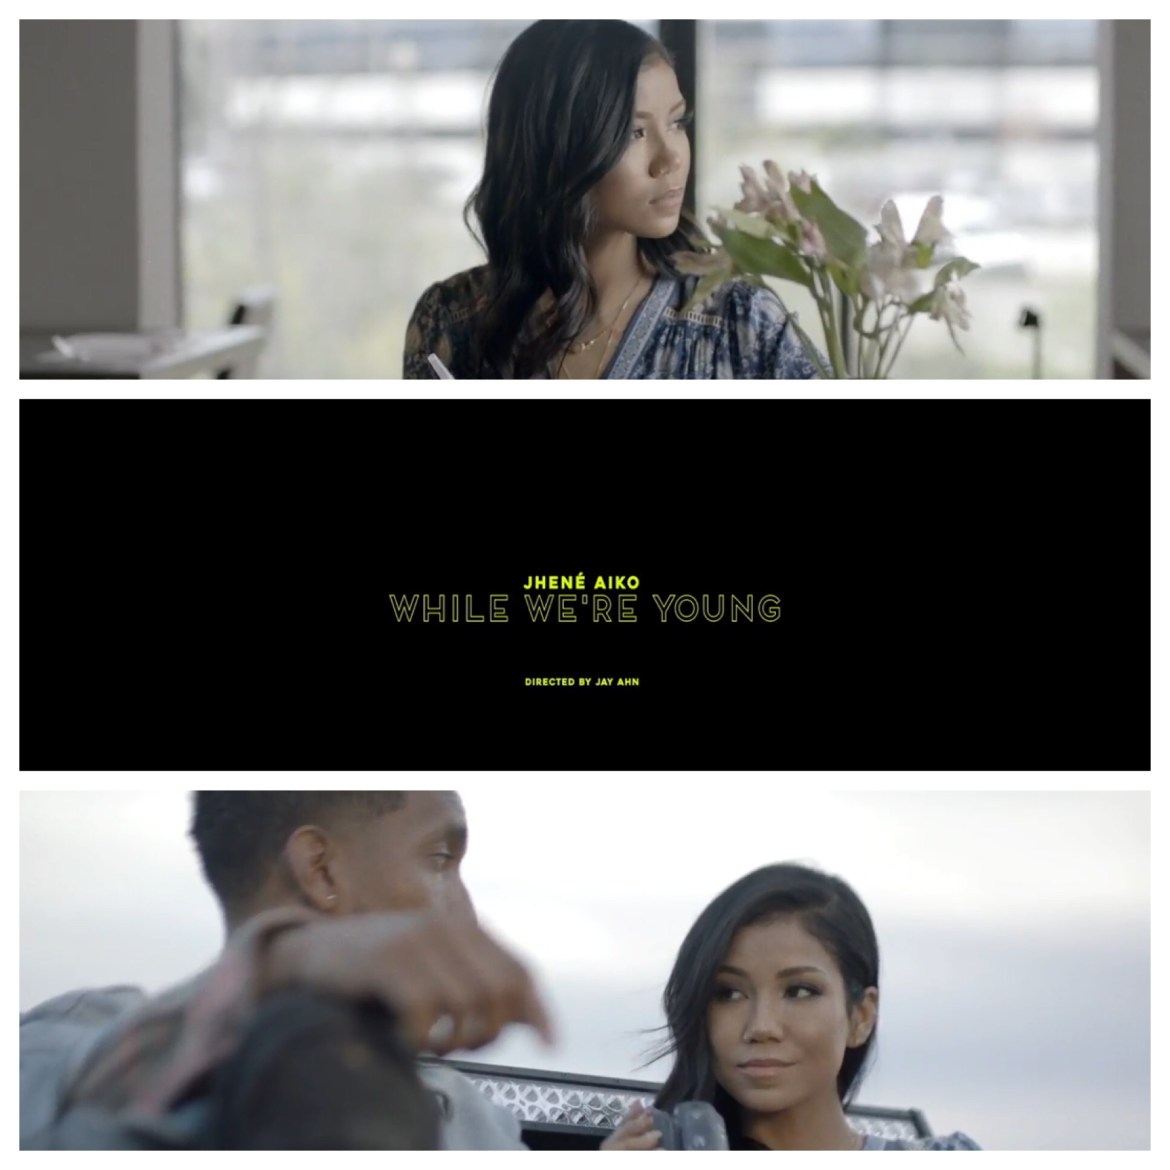 New Ish Jhene Aiko While Were Young Video